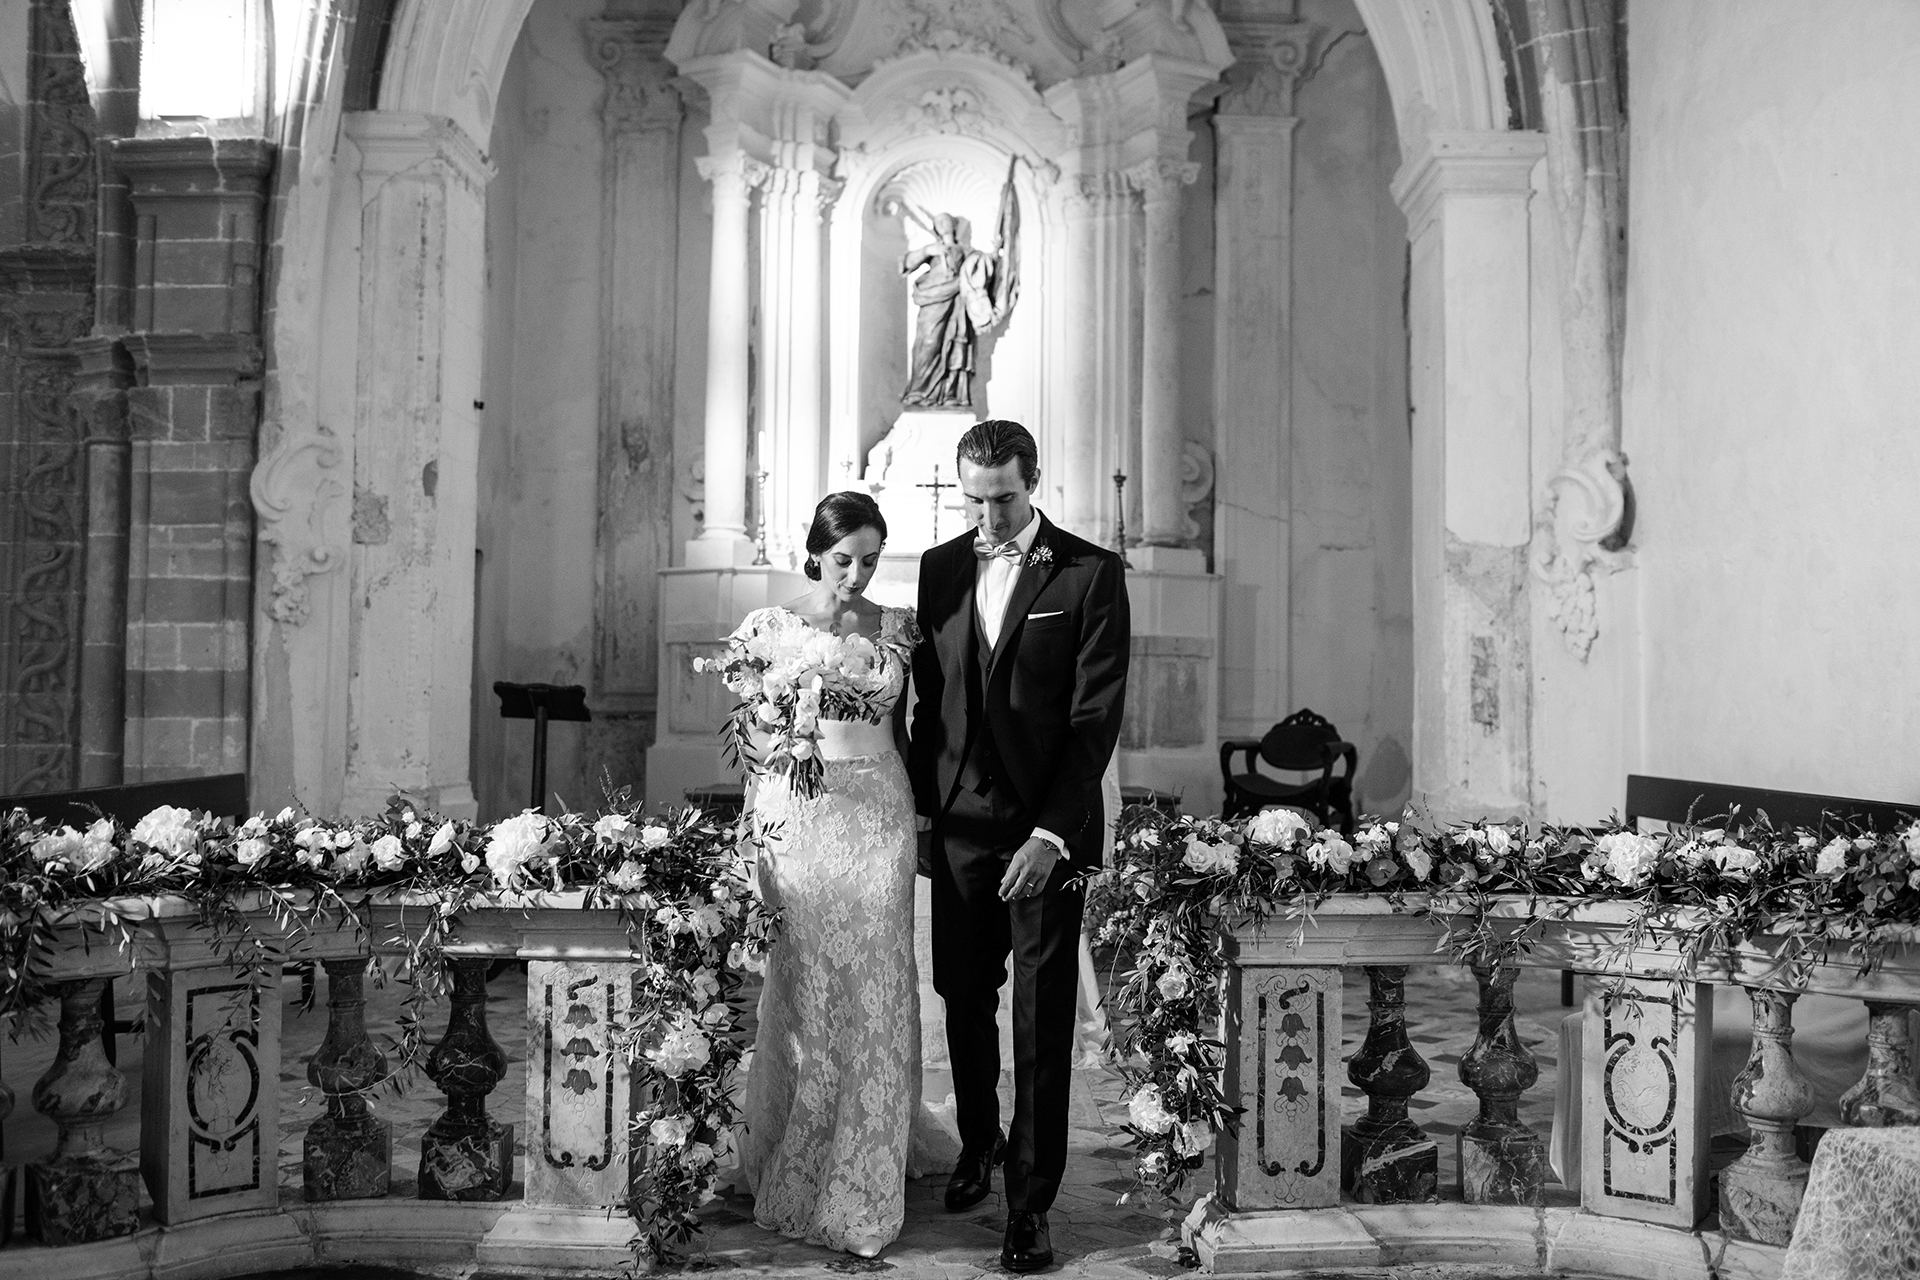 Sant'Orsola Church - Sicily Wedding Ceremony Image | The bride and groom take their first steps as husband and wife